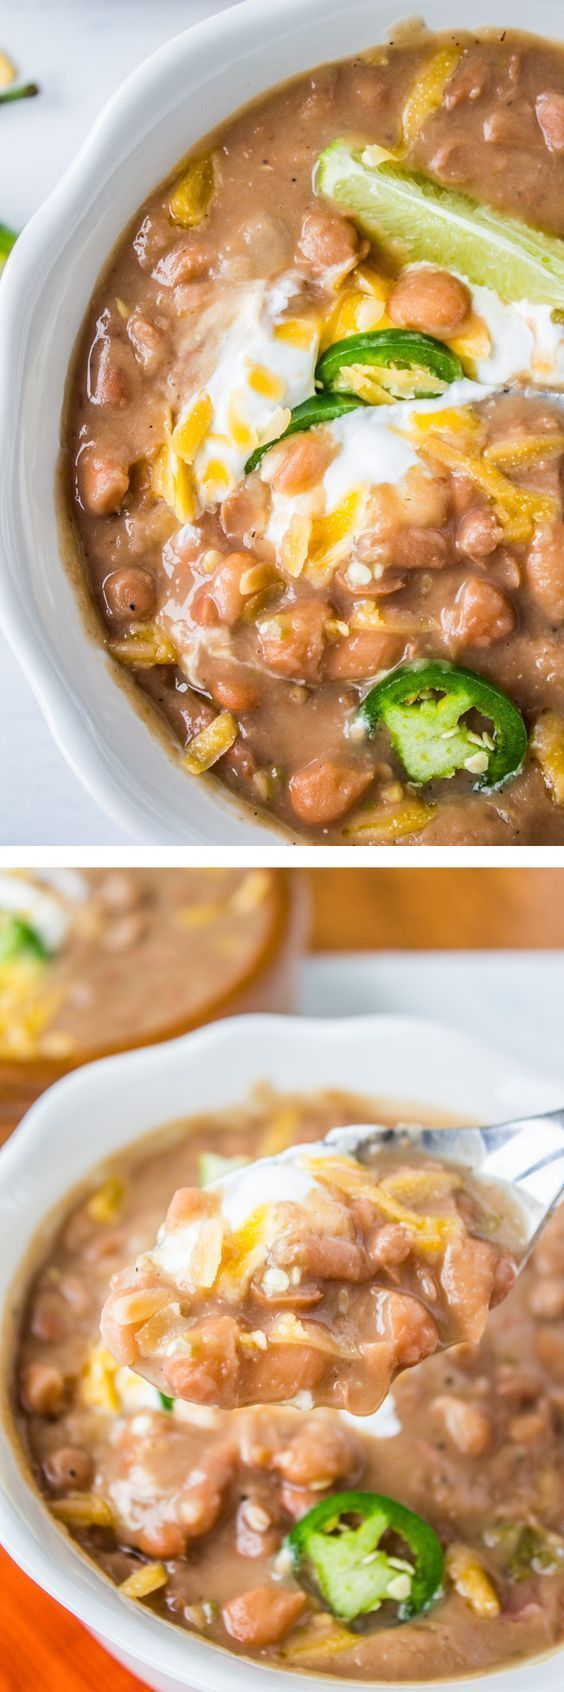 Traditional Tejano Pinto Beans (Slow Cooker) // from The Food Charlatan. These Texas beans are cooked with ham bone and jalapeno for a Mexican twist! Perfect side dish and so easy. #mexicanfoodrecipes